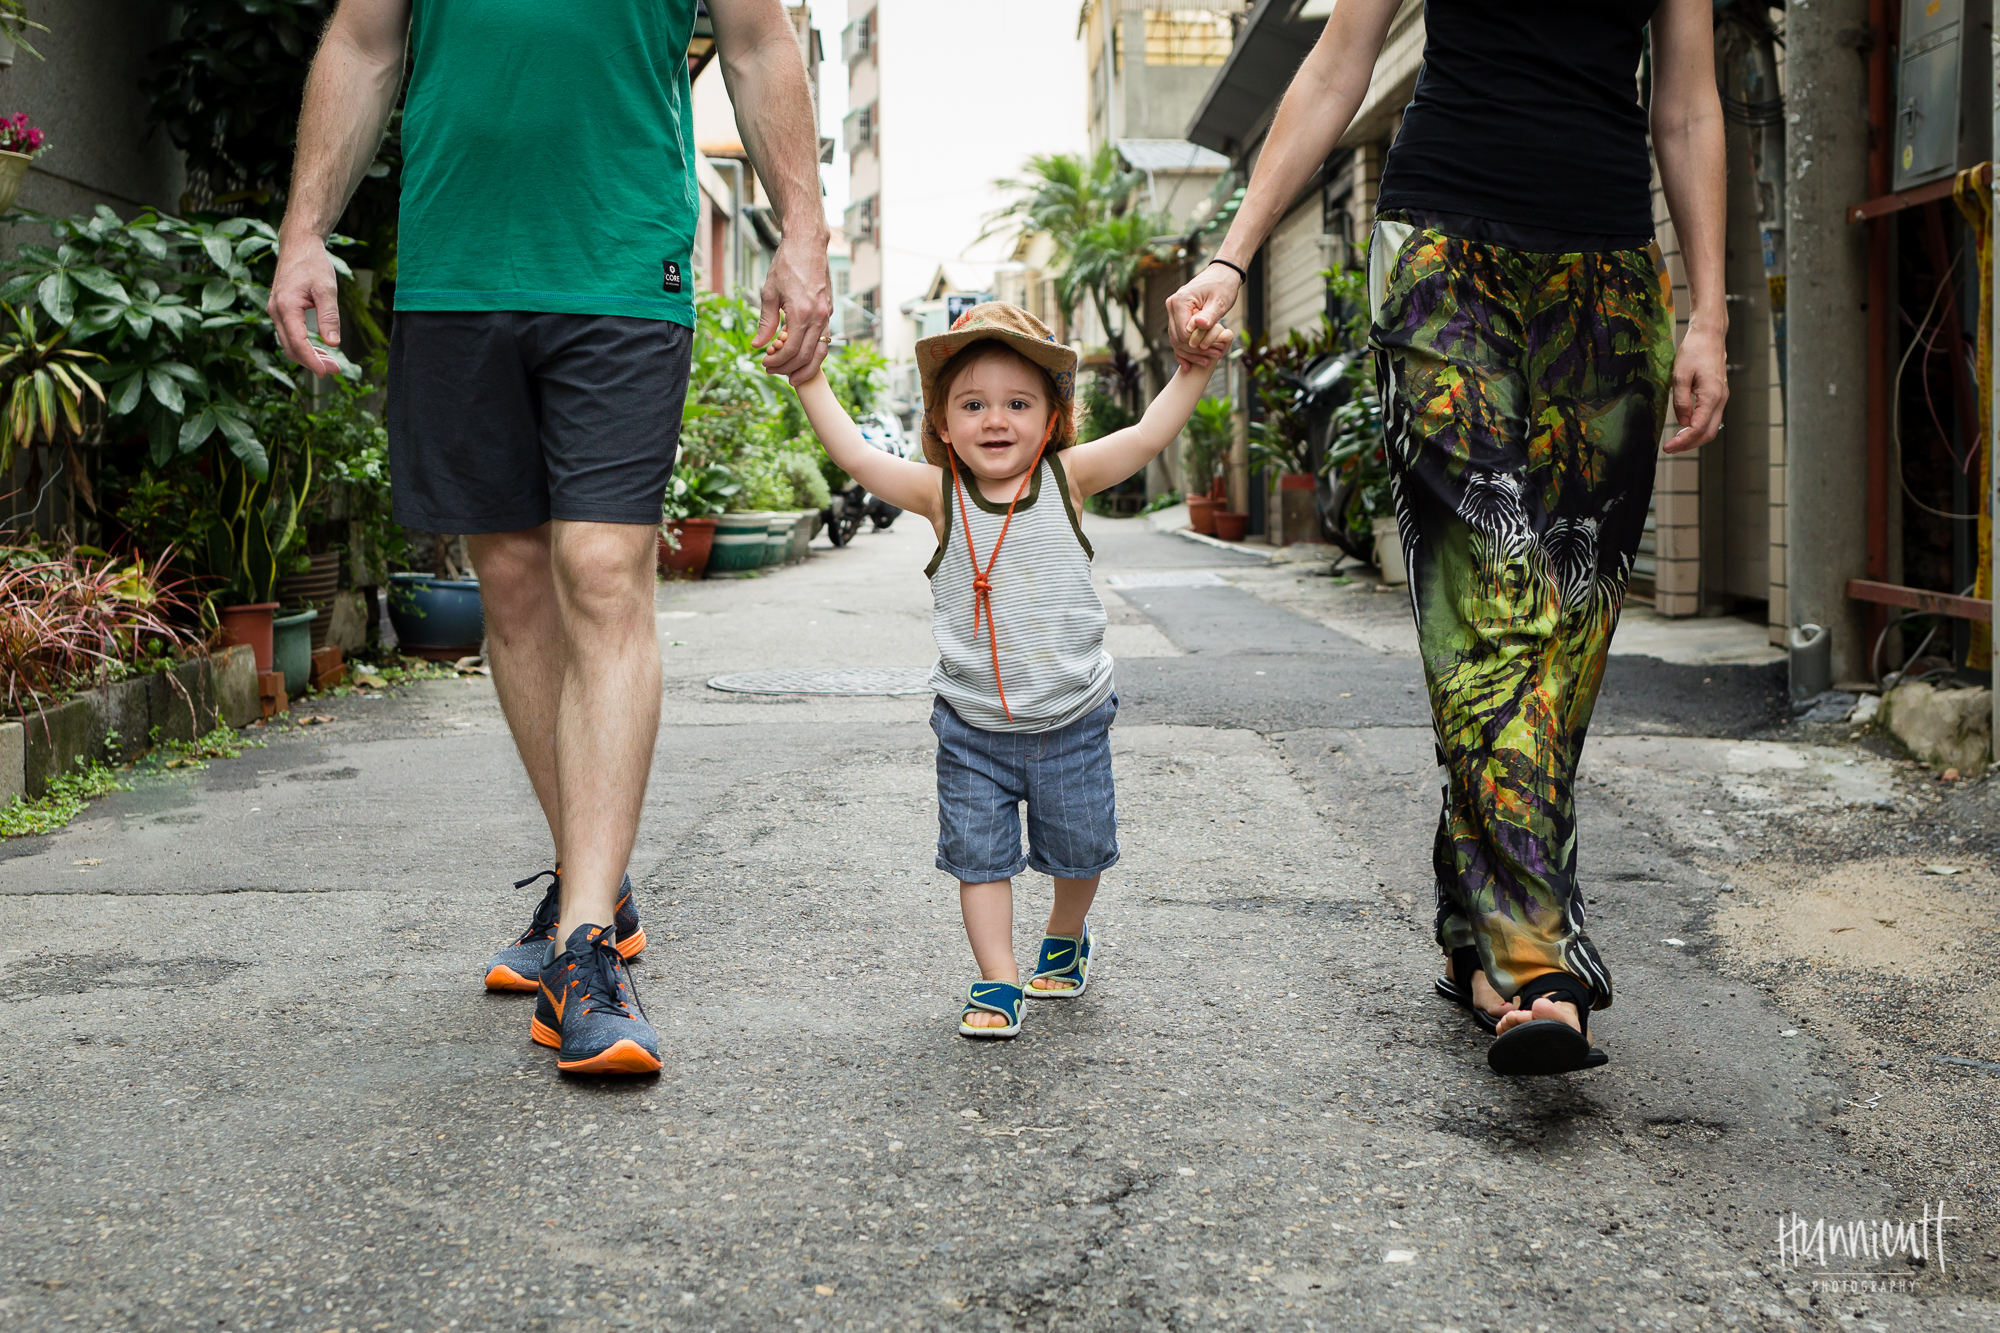 Hunnicutt_Photography_Taichung_Urban_Lifestyle_Family_Photography